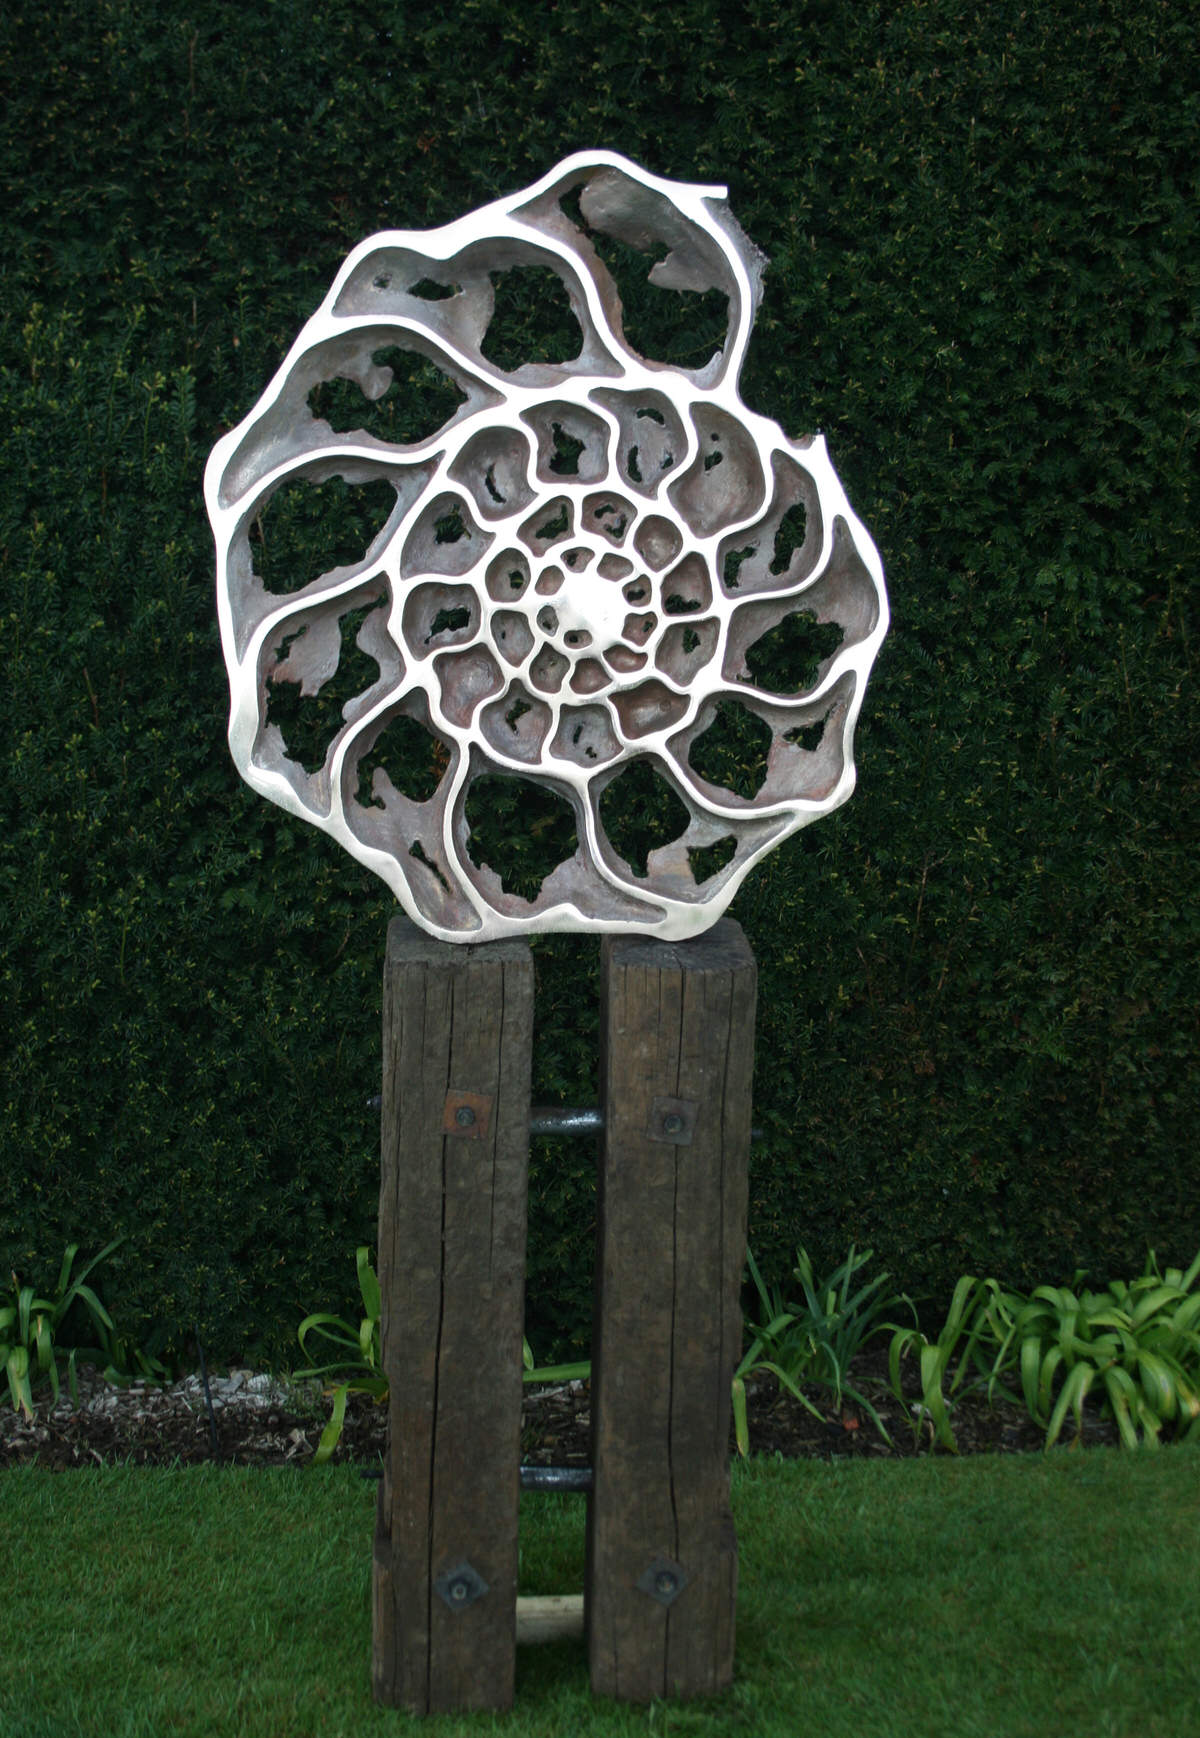 Ammonite 'inside' sculpture- bronze sculpture ammonite fossil sculpture Natural History Museum by Mark Reed